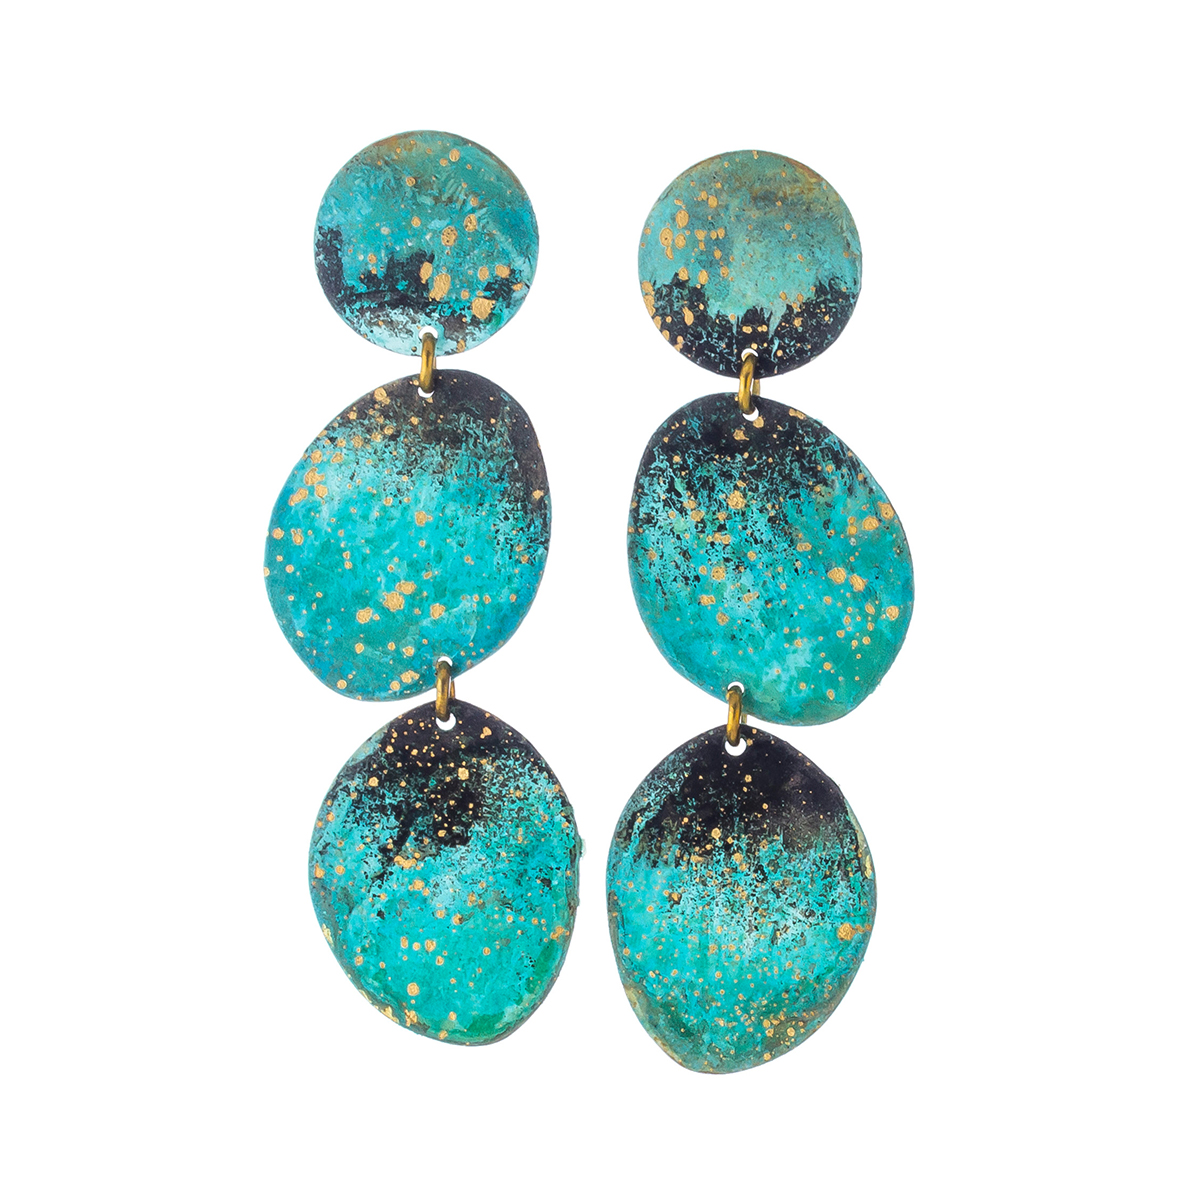 Forest oval stud earrings by Sibilia